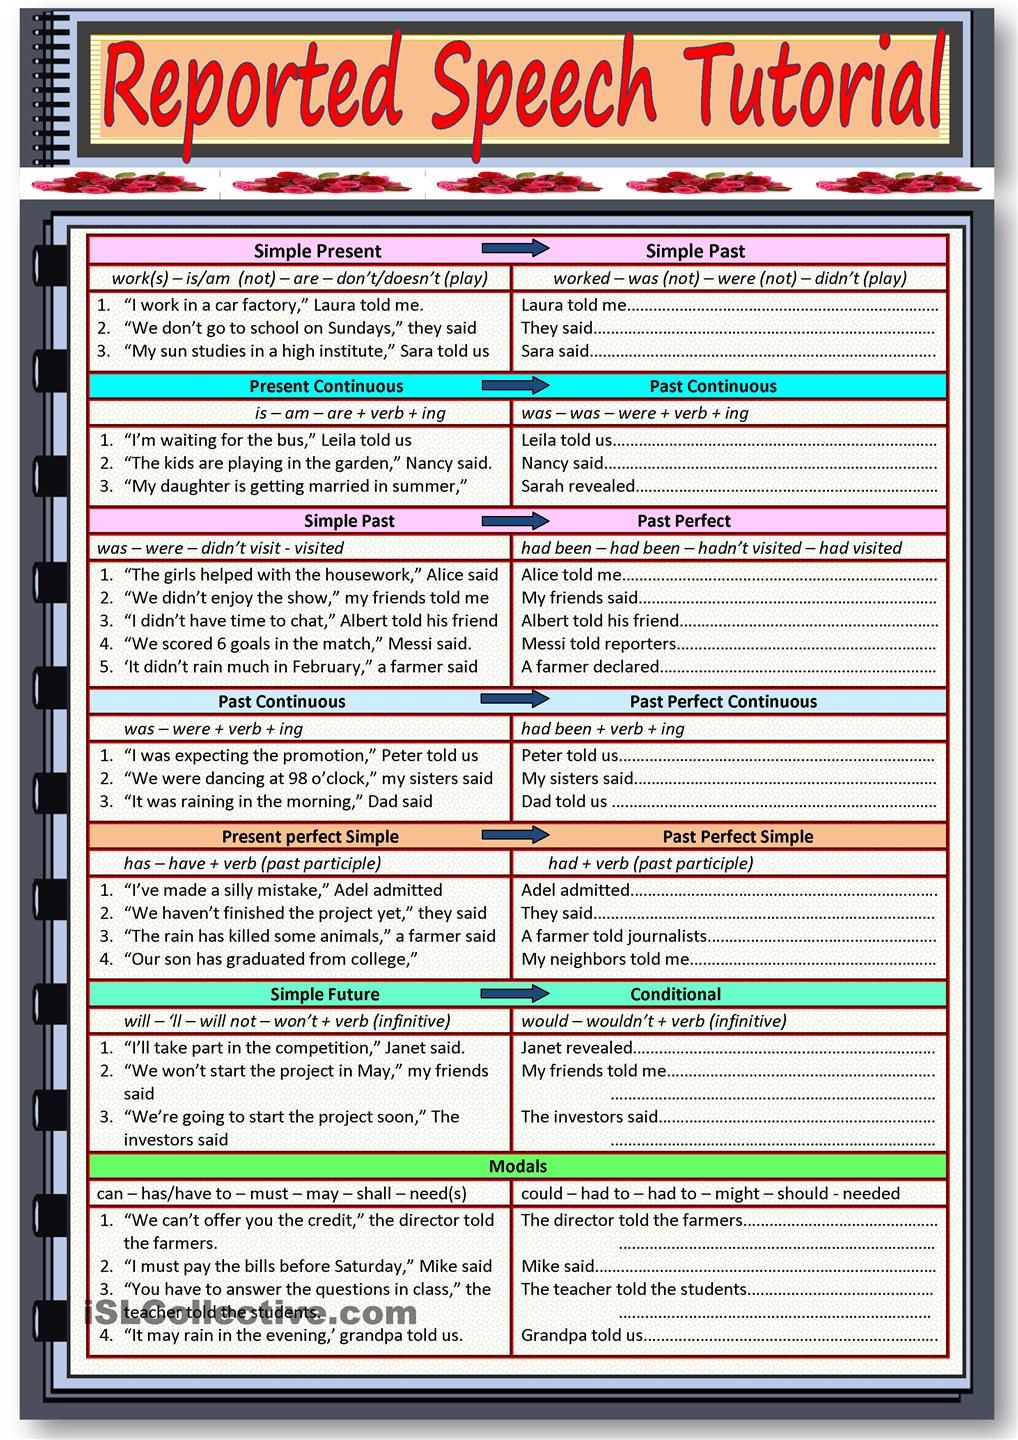 Reported Speech: Tutorial and Exercises: ESLprintable worksheet of the day on August 19, 2015 by habach.